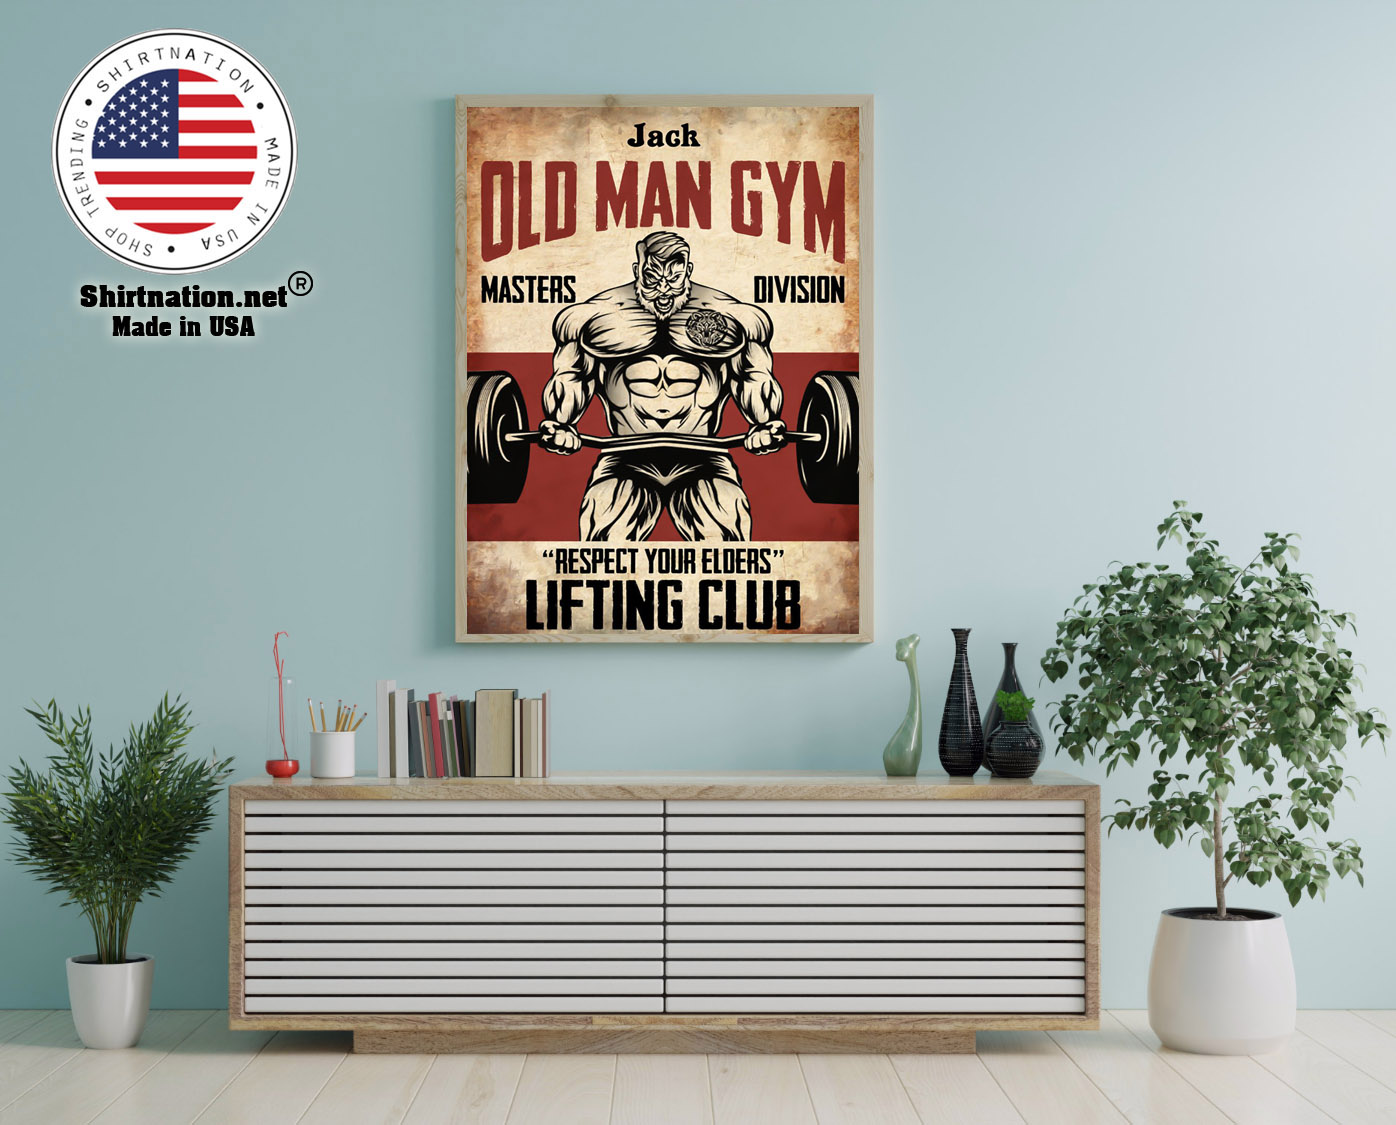 Old man gym masters division respect your elders lifting club poster 12